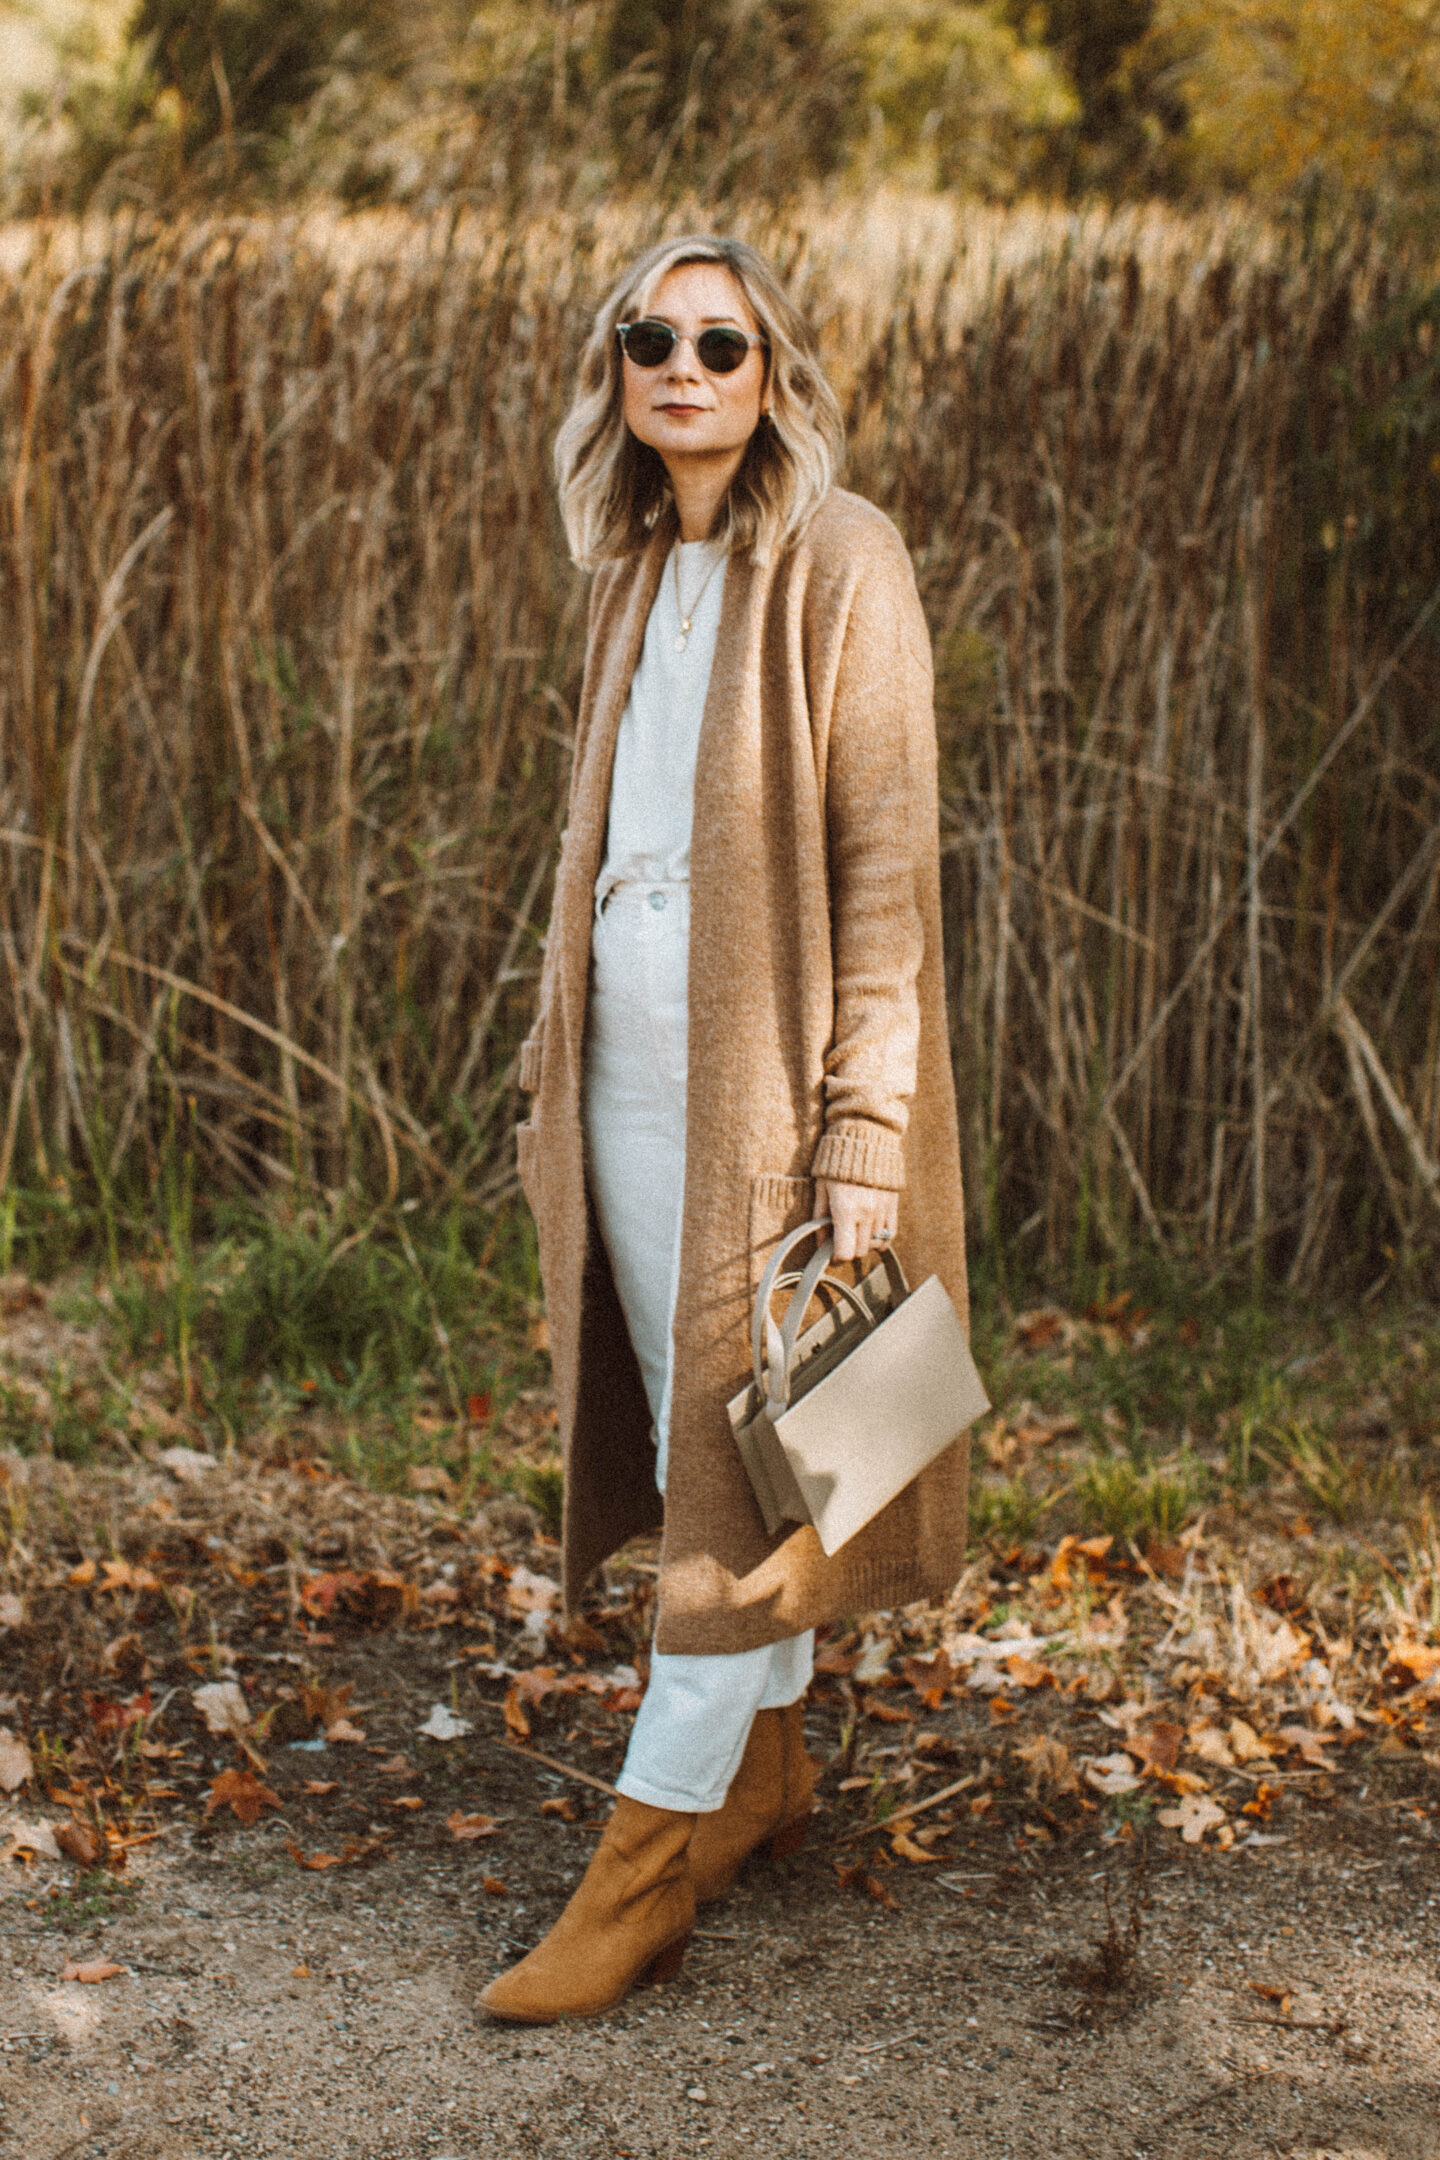 How to Style White Jeans for Fall, everlane glove boot reknit, camel maxi cardigan